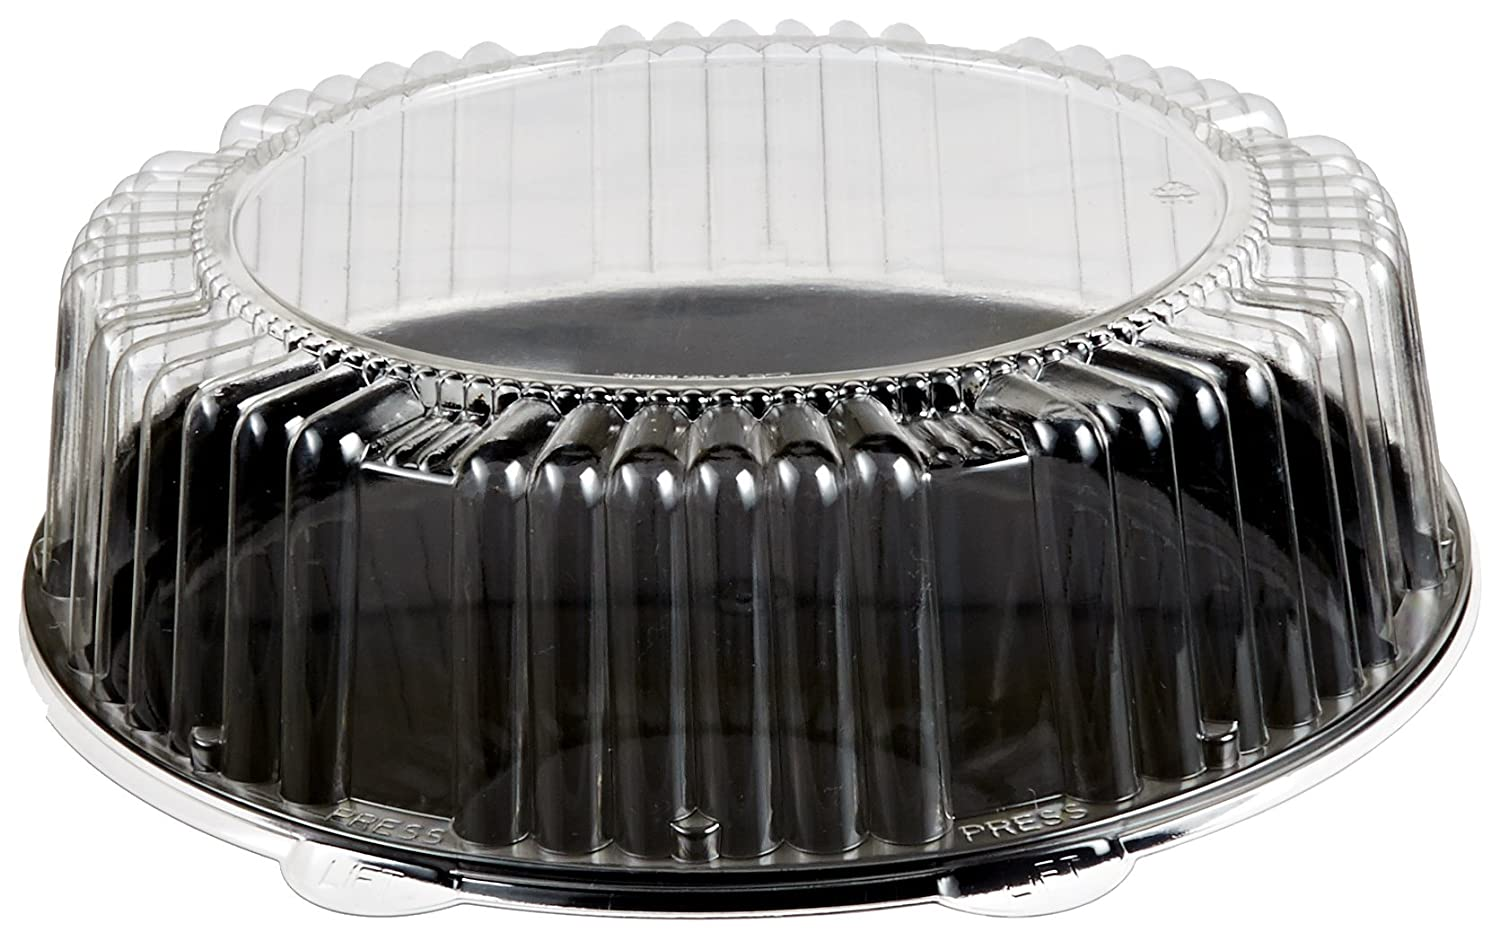 CheckMate Plastic Round Catering Tray and Dome Lid Combo, Clear/Black, 12-Inch (25-Count) WNA Inc. ACP912BLPET